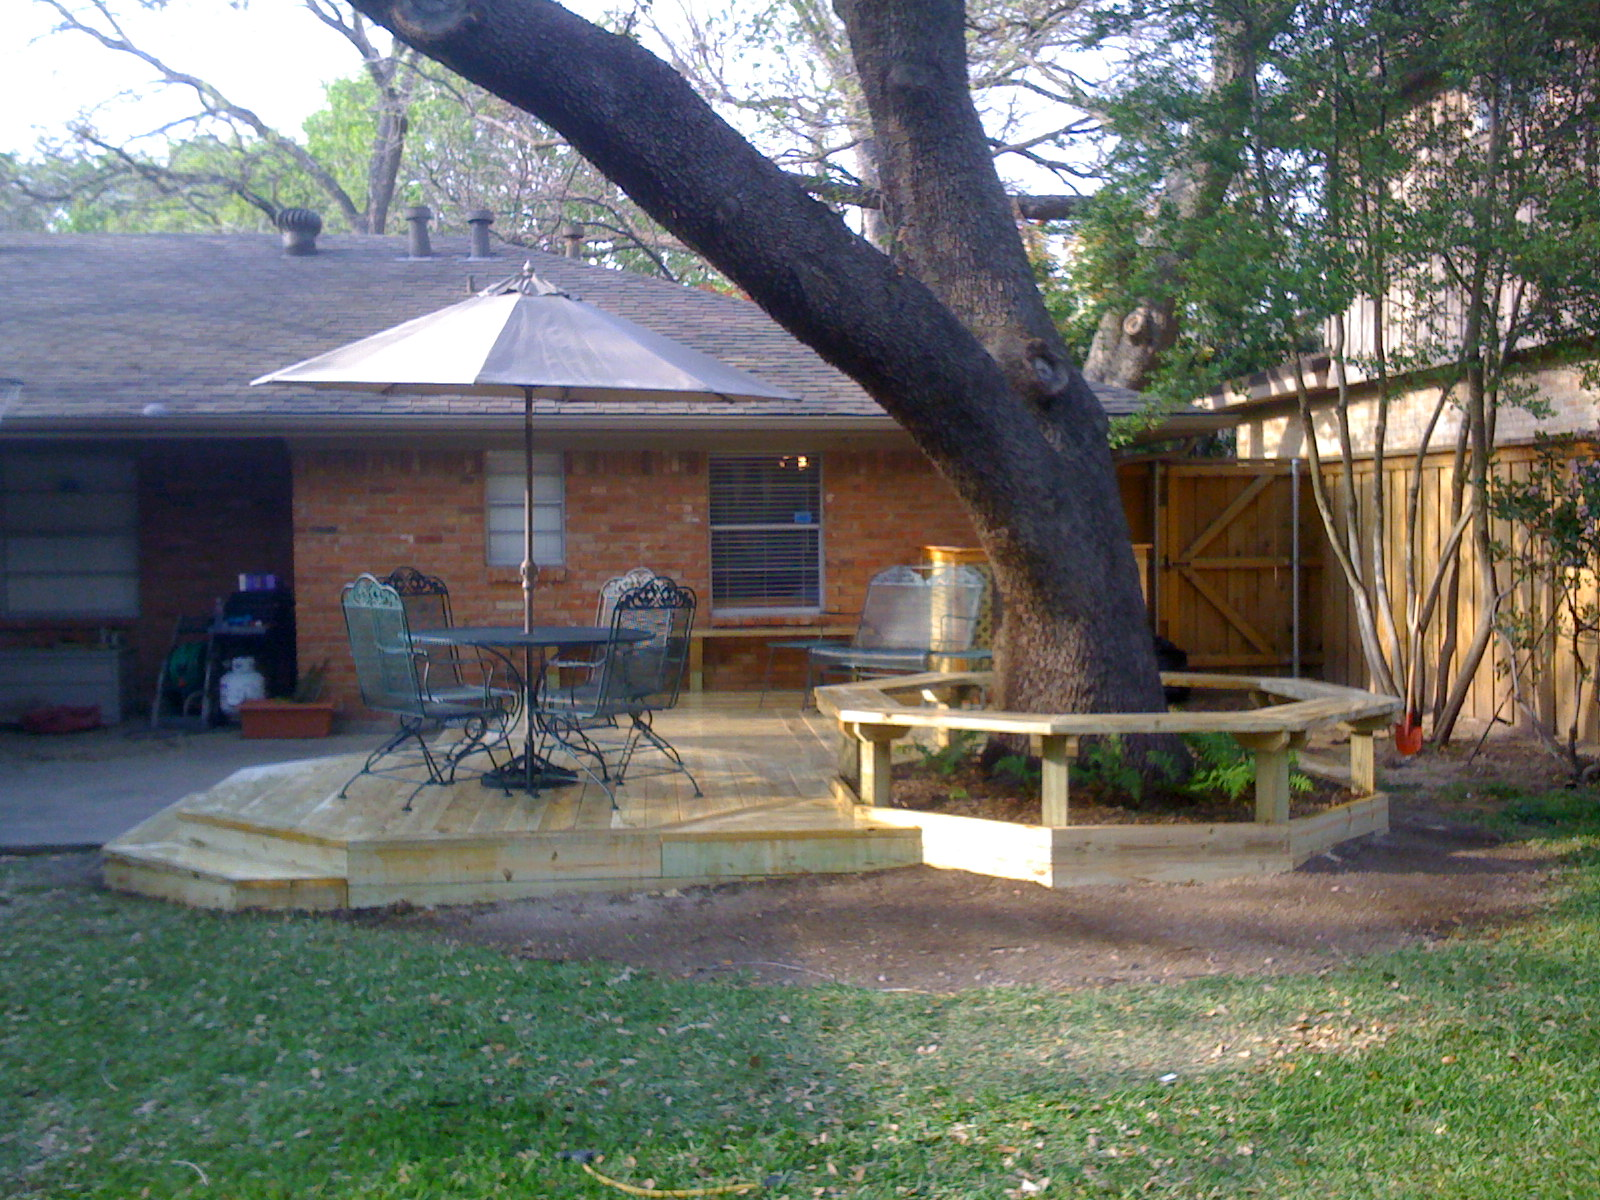 A Backyard Deck Can Enhance The Look Of Your House While Adding To